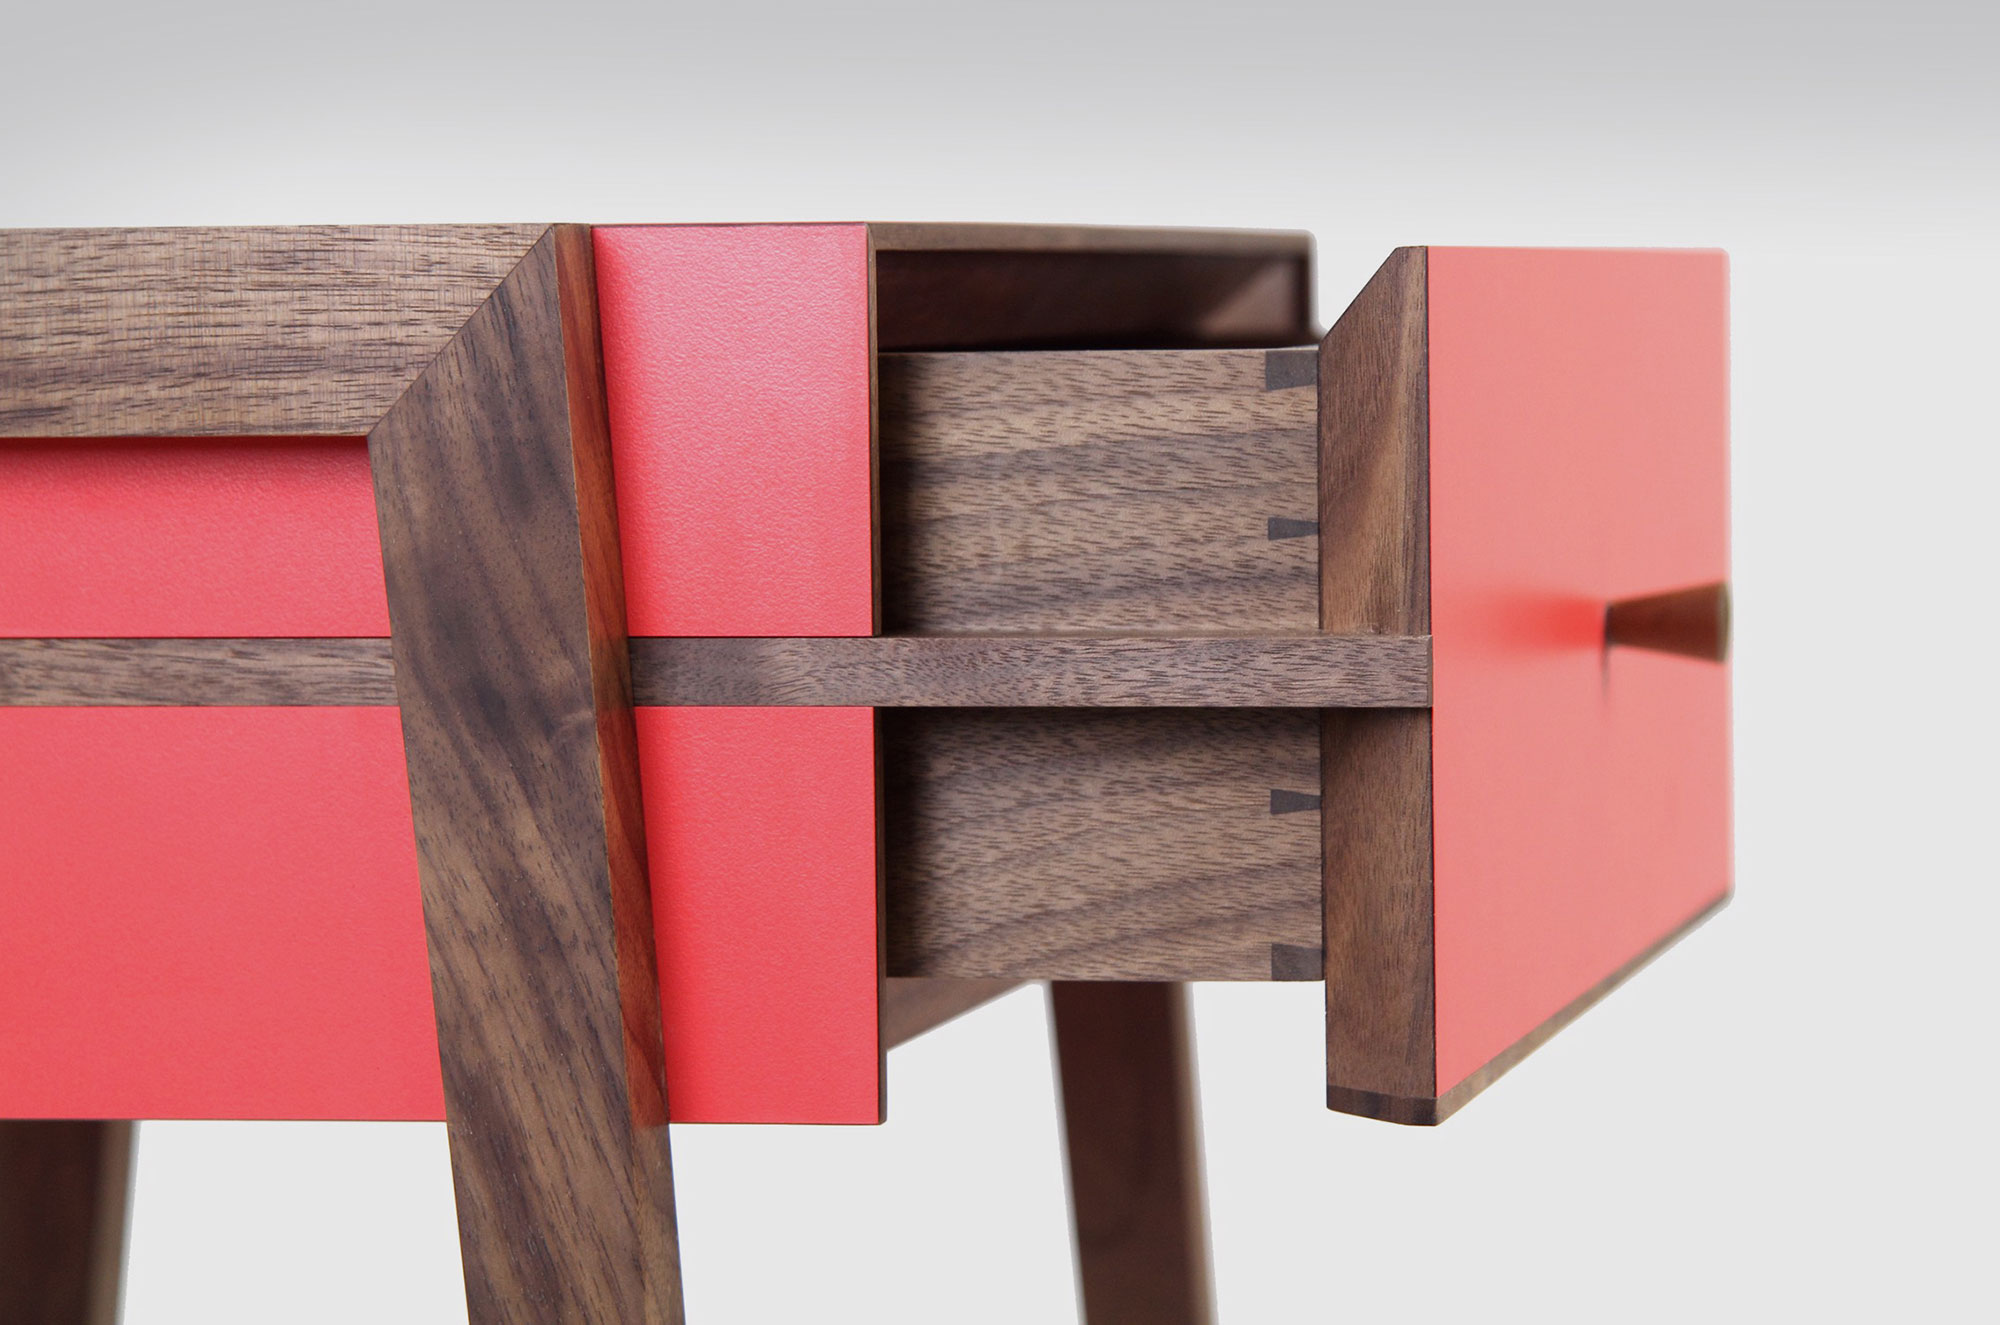 The Young & Norgate furniture collection, designed and made in-house and limited to 100 pieces per design.